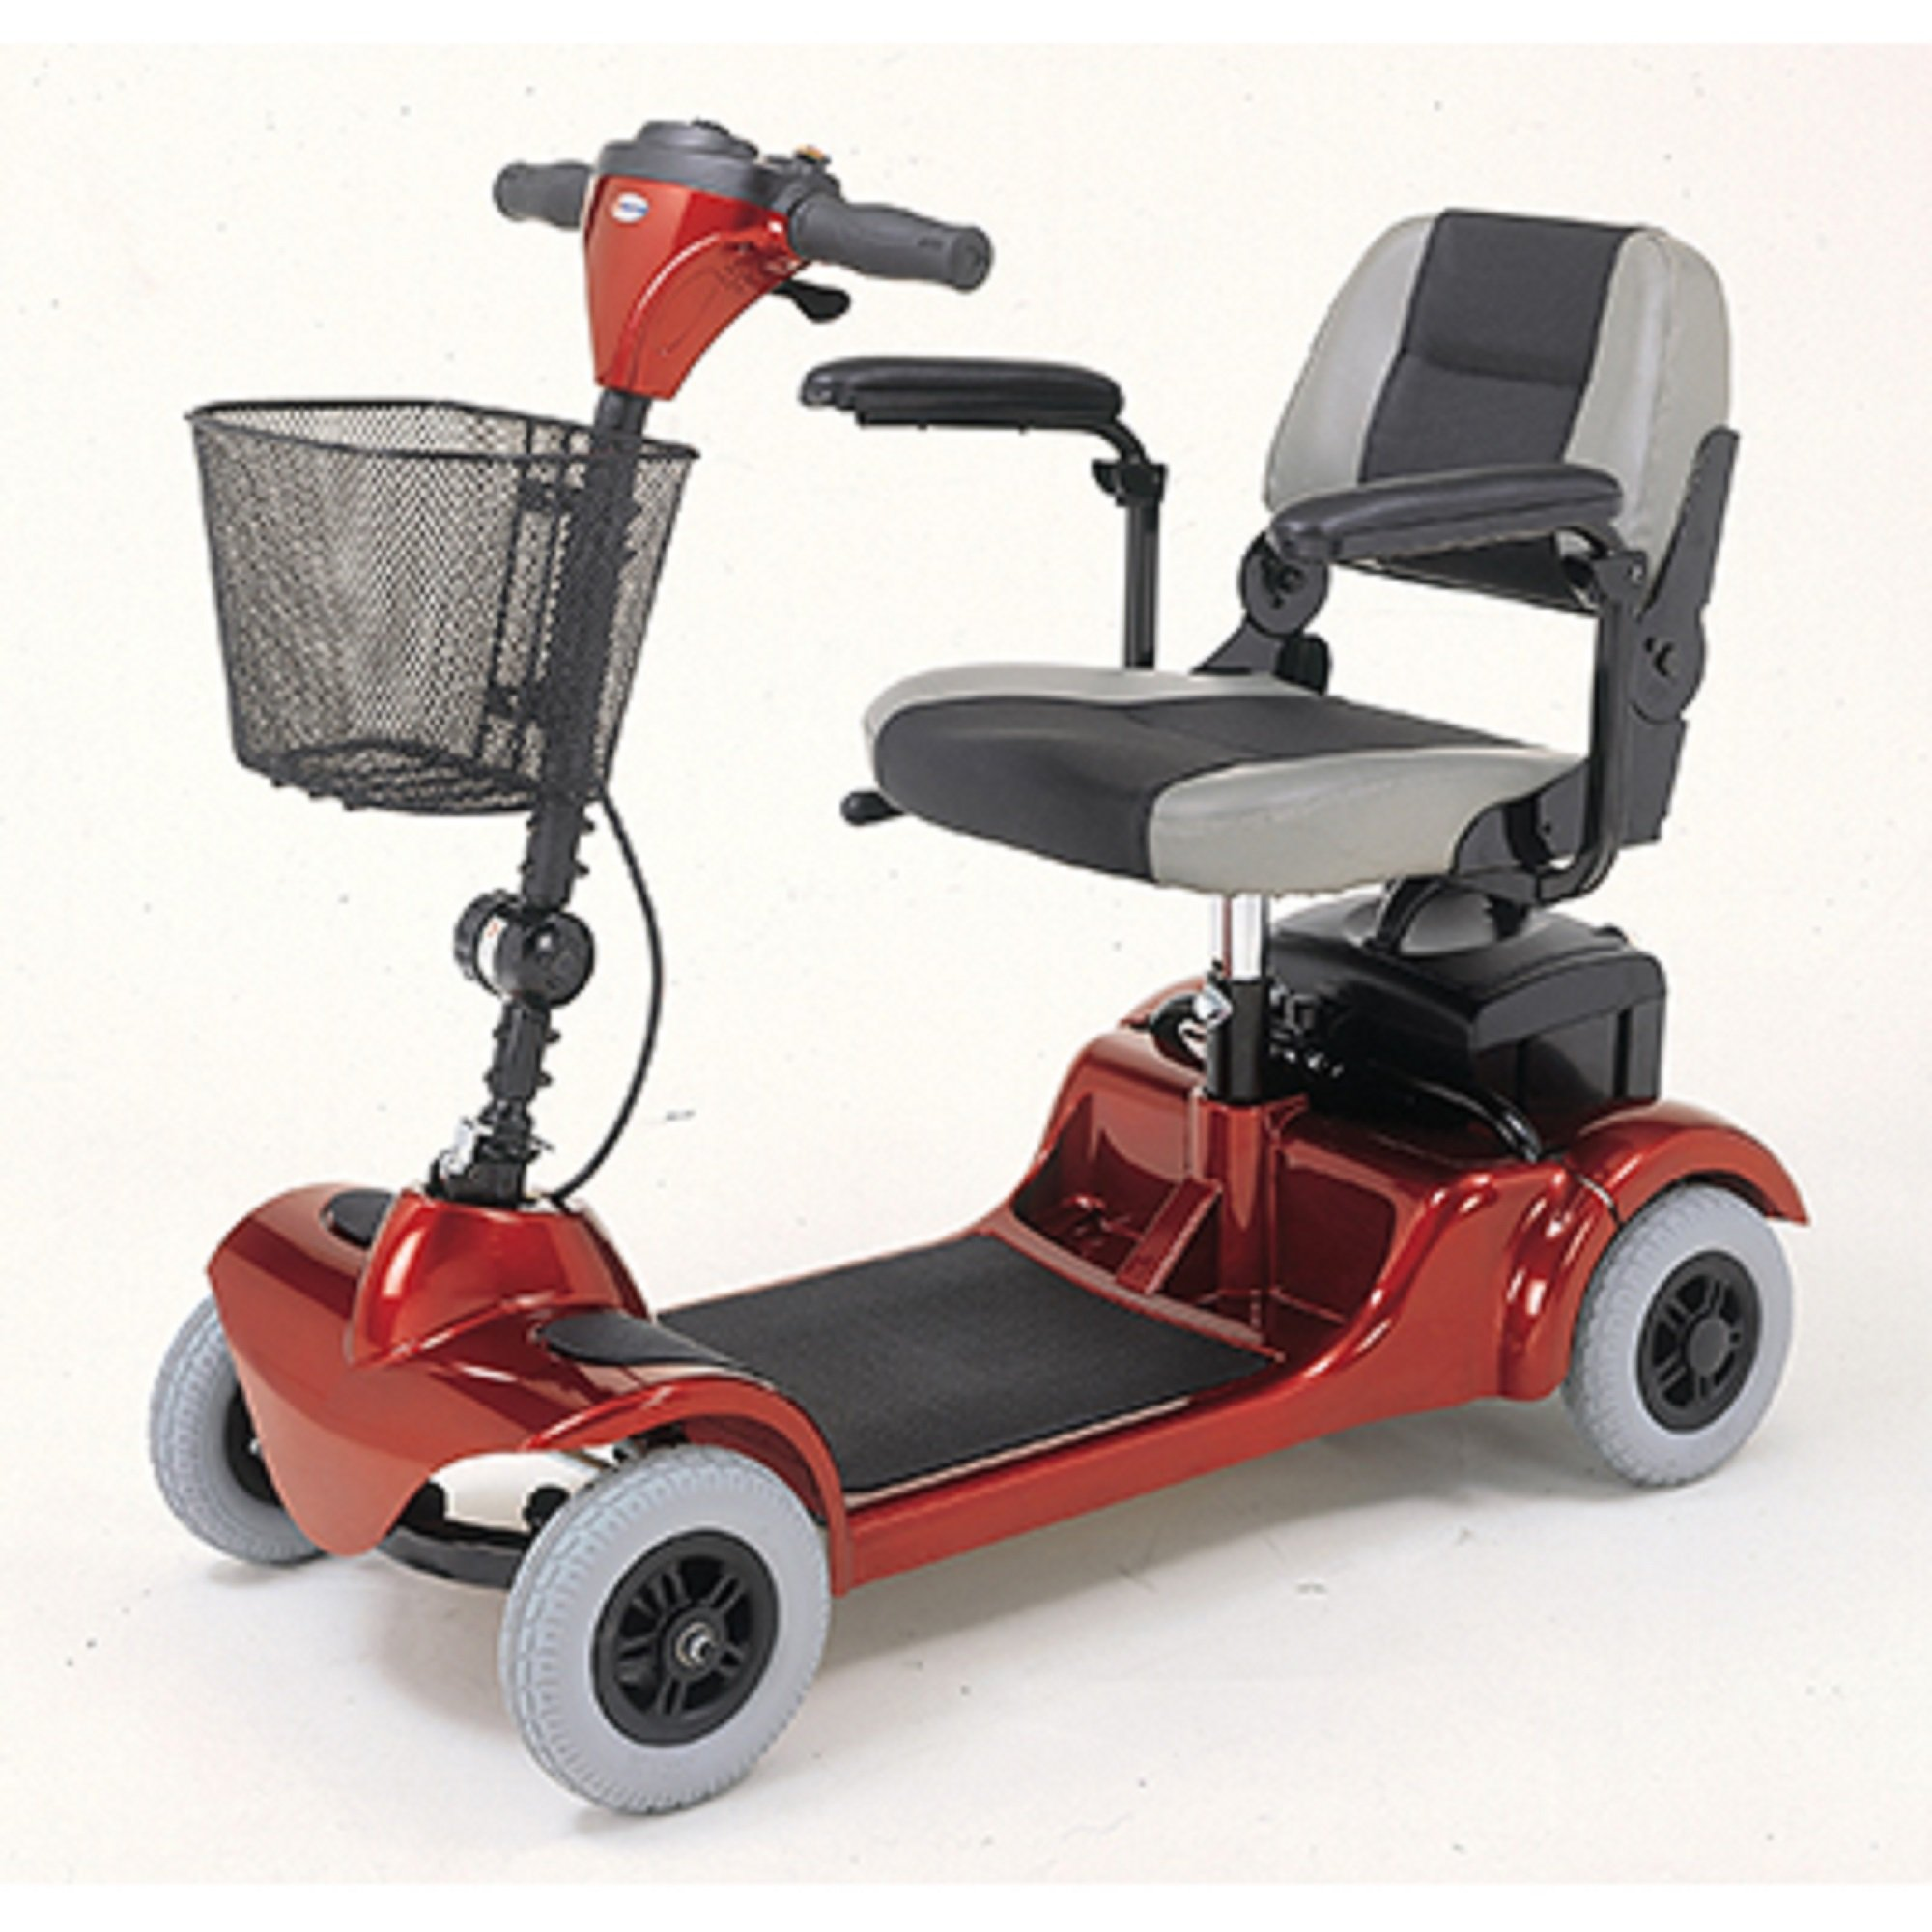 Merits Health Products - Mini Coupe - 4-Wheel Super Micro Electric Scooter - 16.5''W x 15.5''D - Red